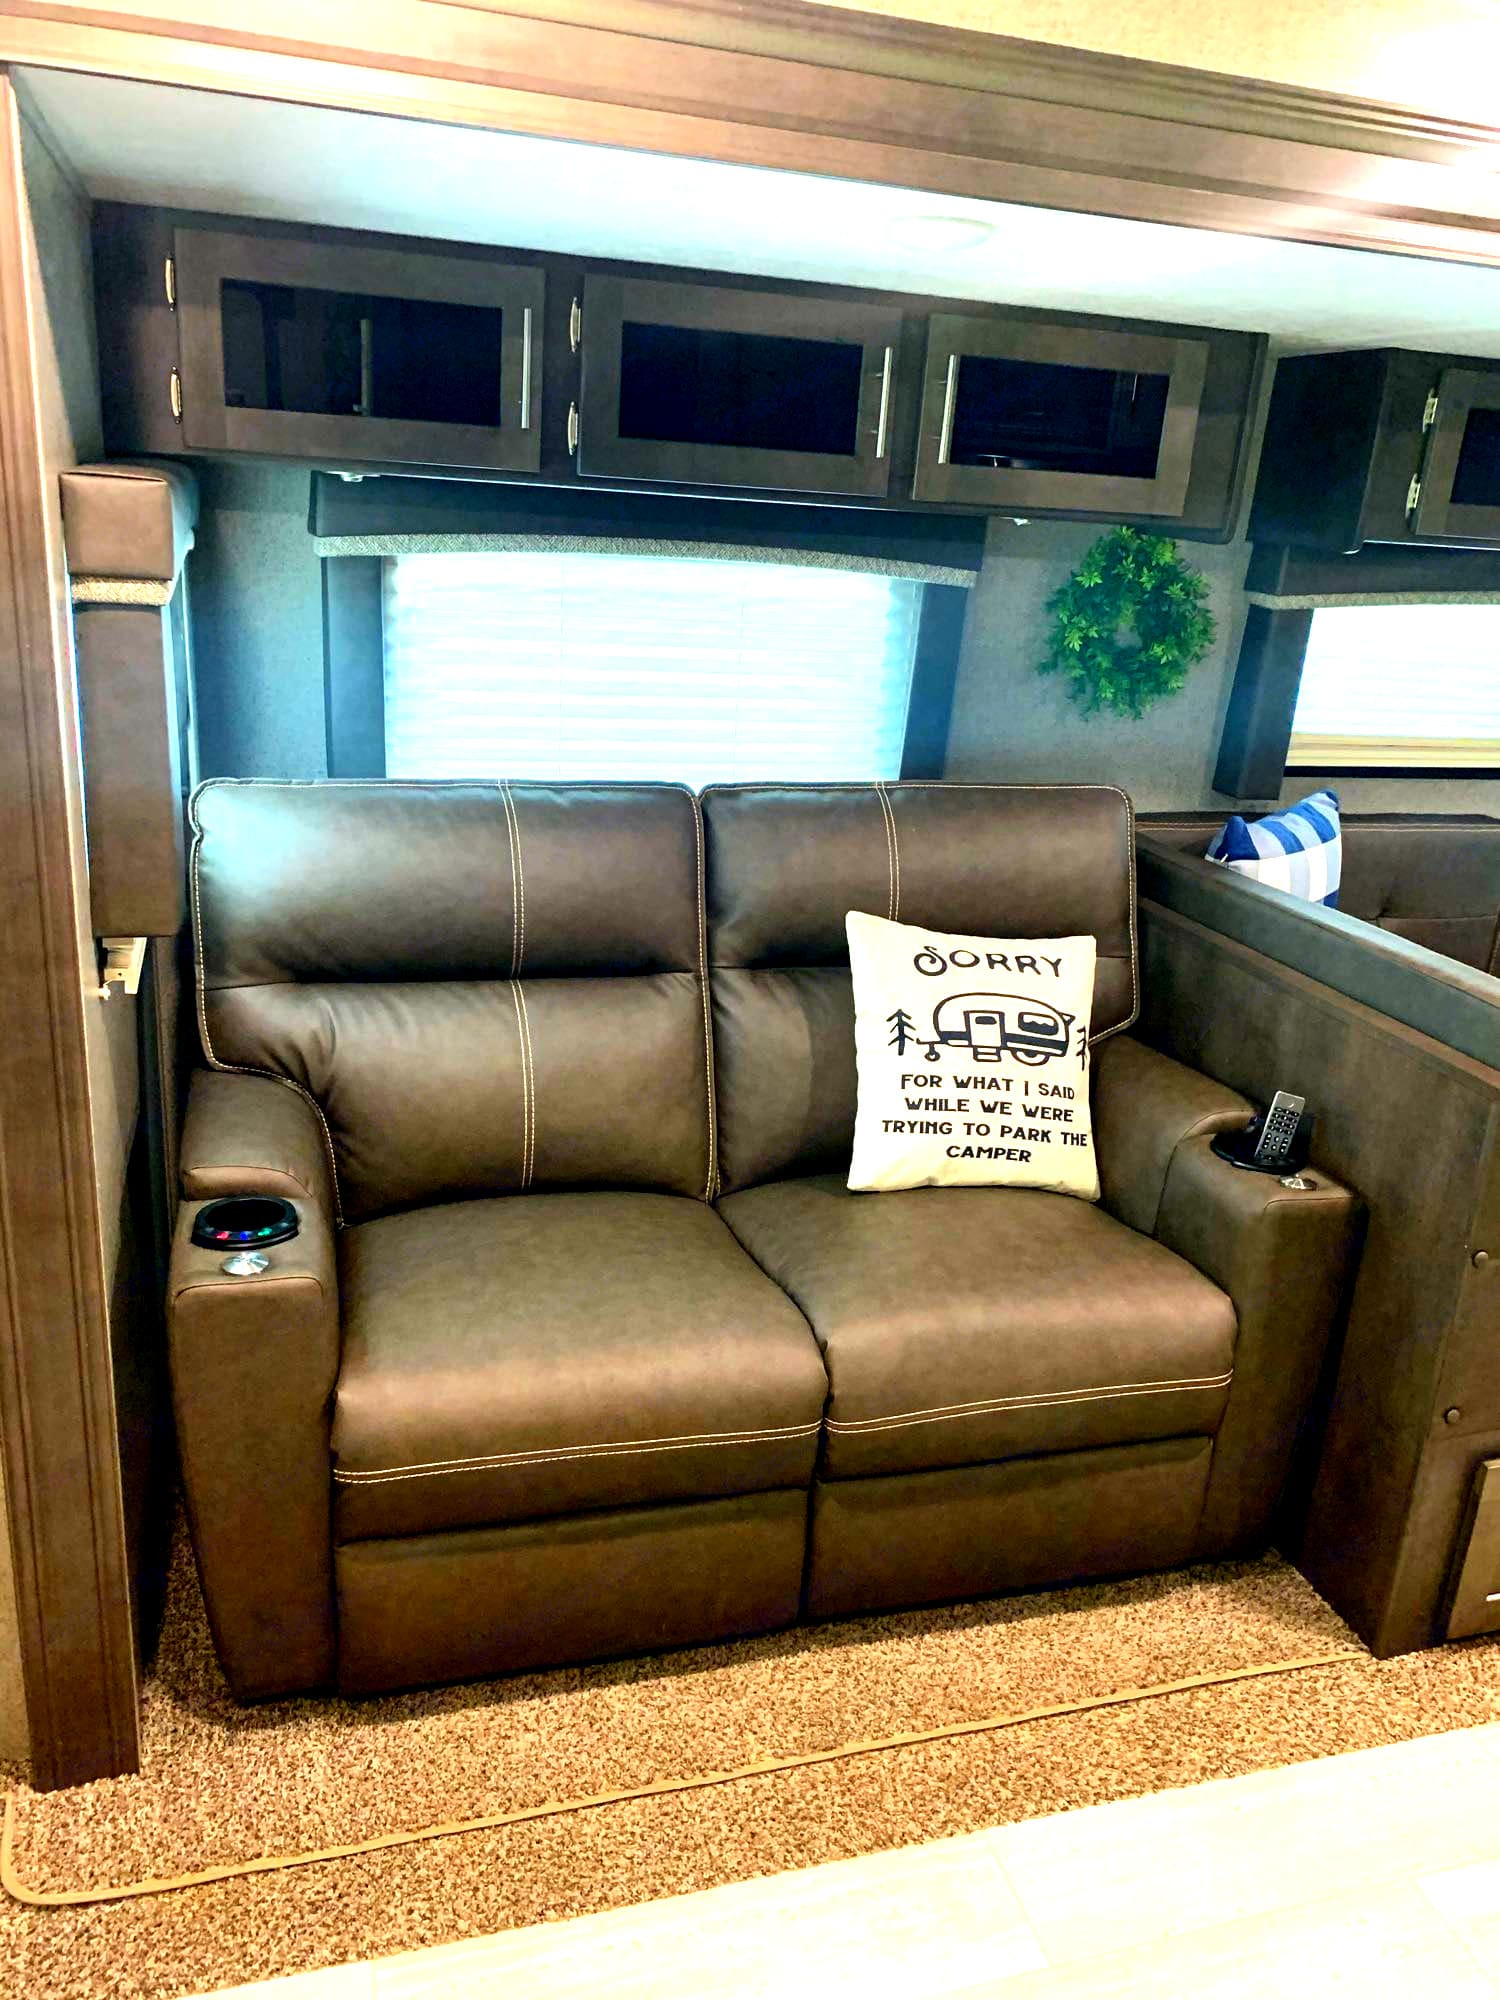 Theater seating: 2 recliners, massage, heat, cup holders, removable tables, and lights; faces TV.. Forest River Rockwood Ultra Lite 2020